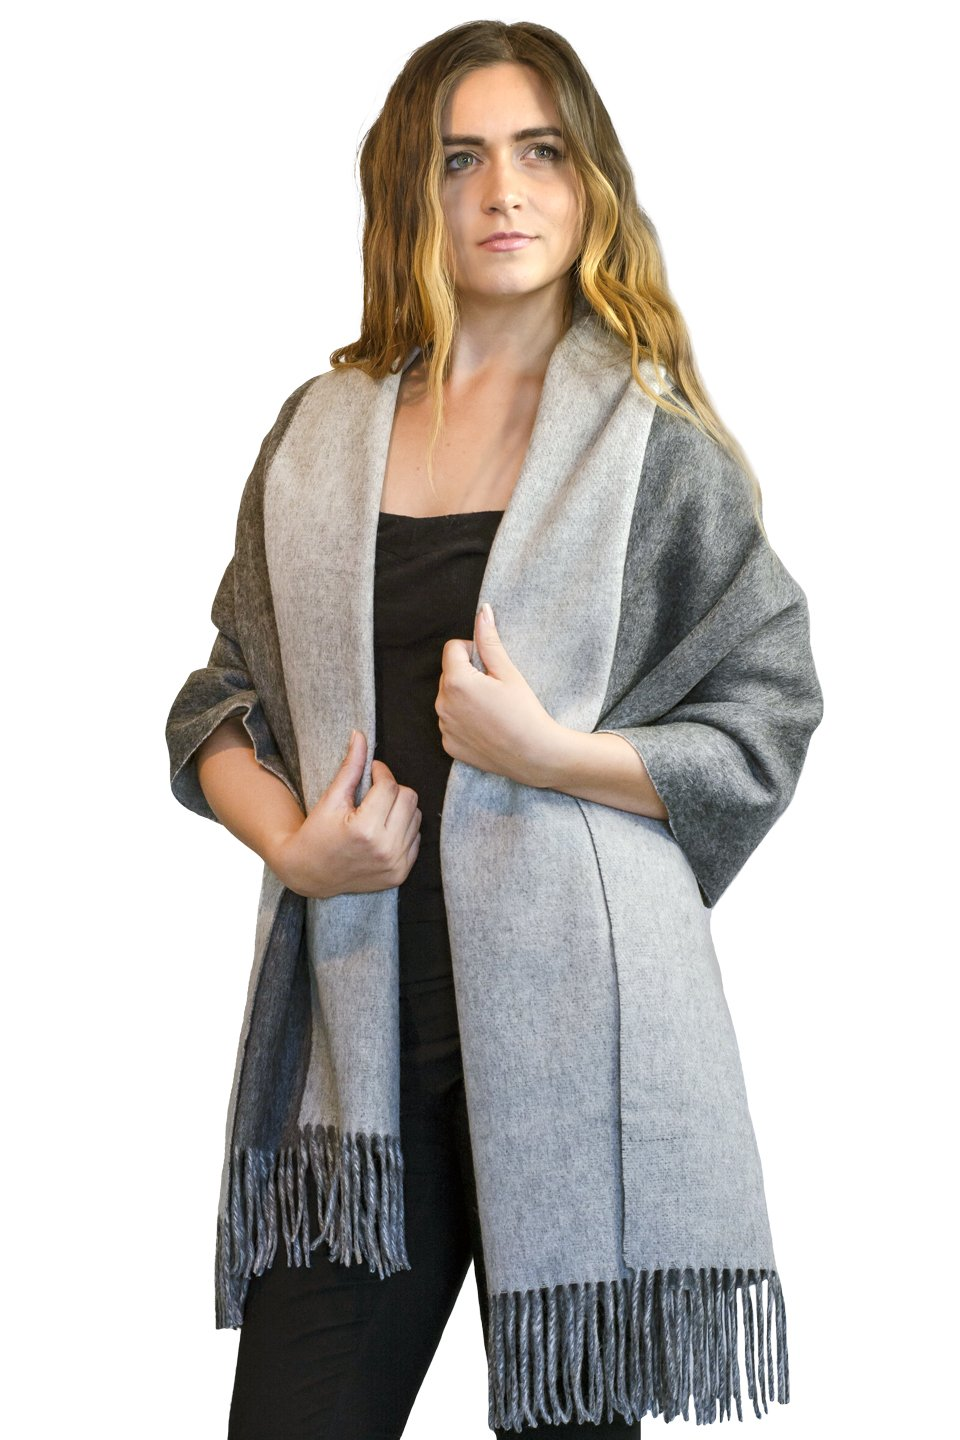 Large Winter Pure Cashmere Shawl 100% Cashmere - Soft and solid Wrap (Grey)